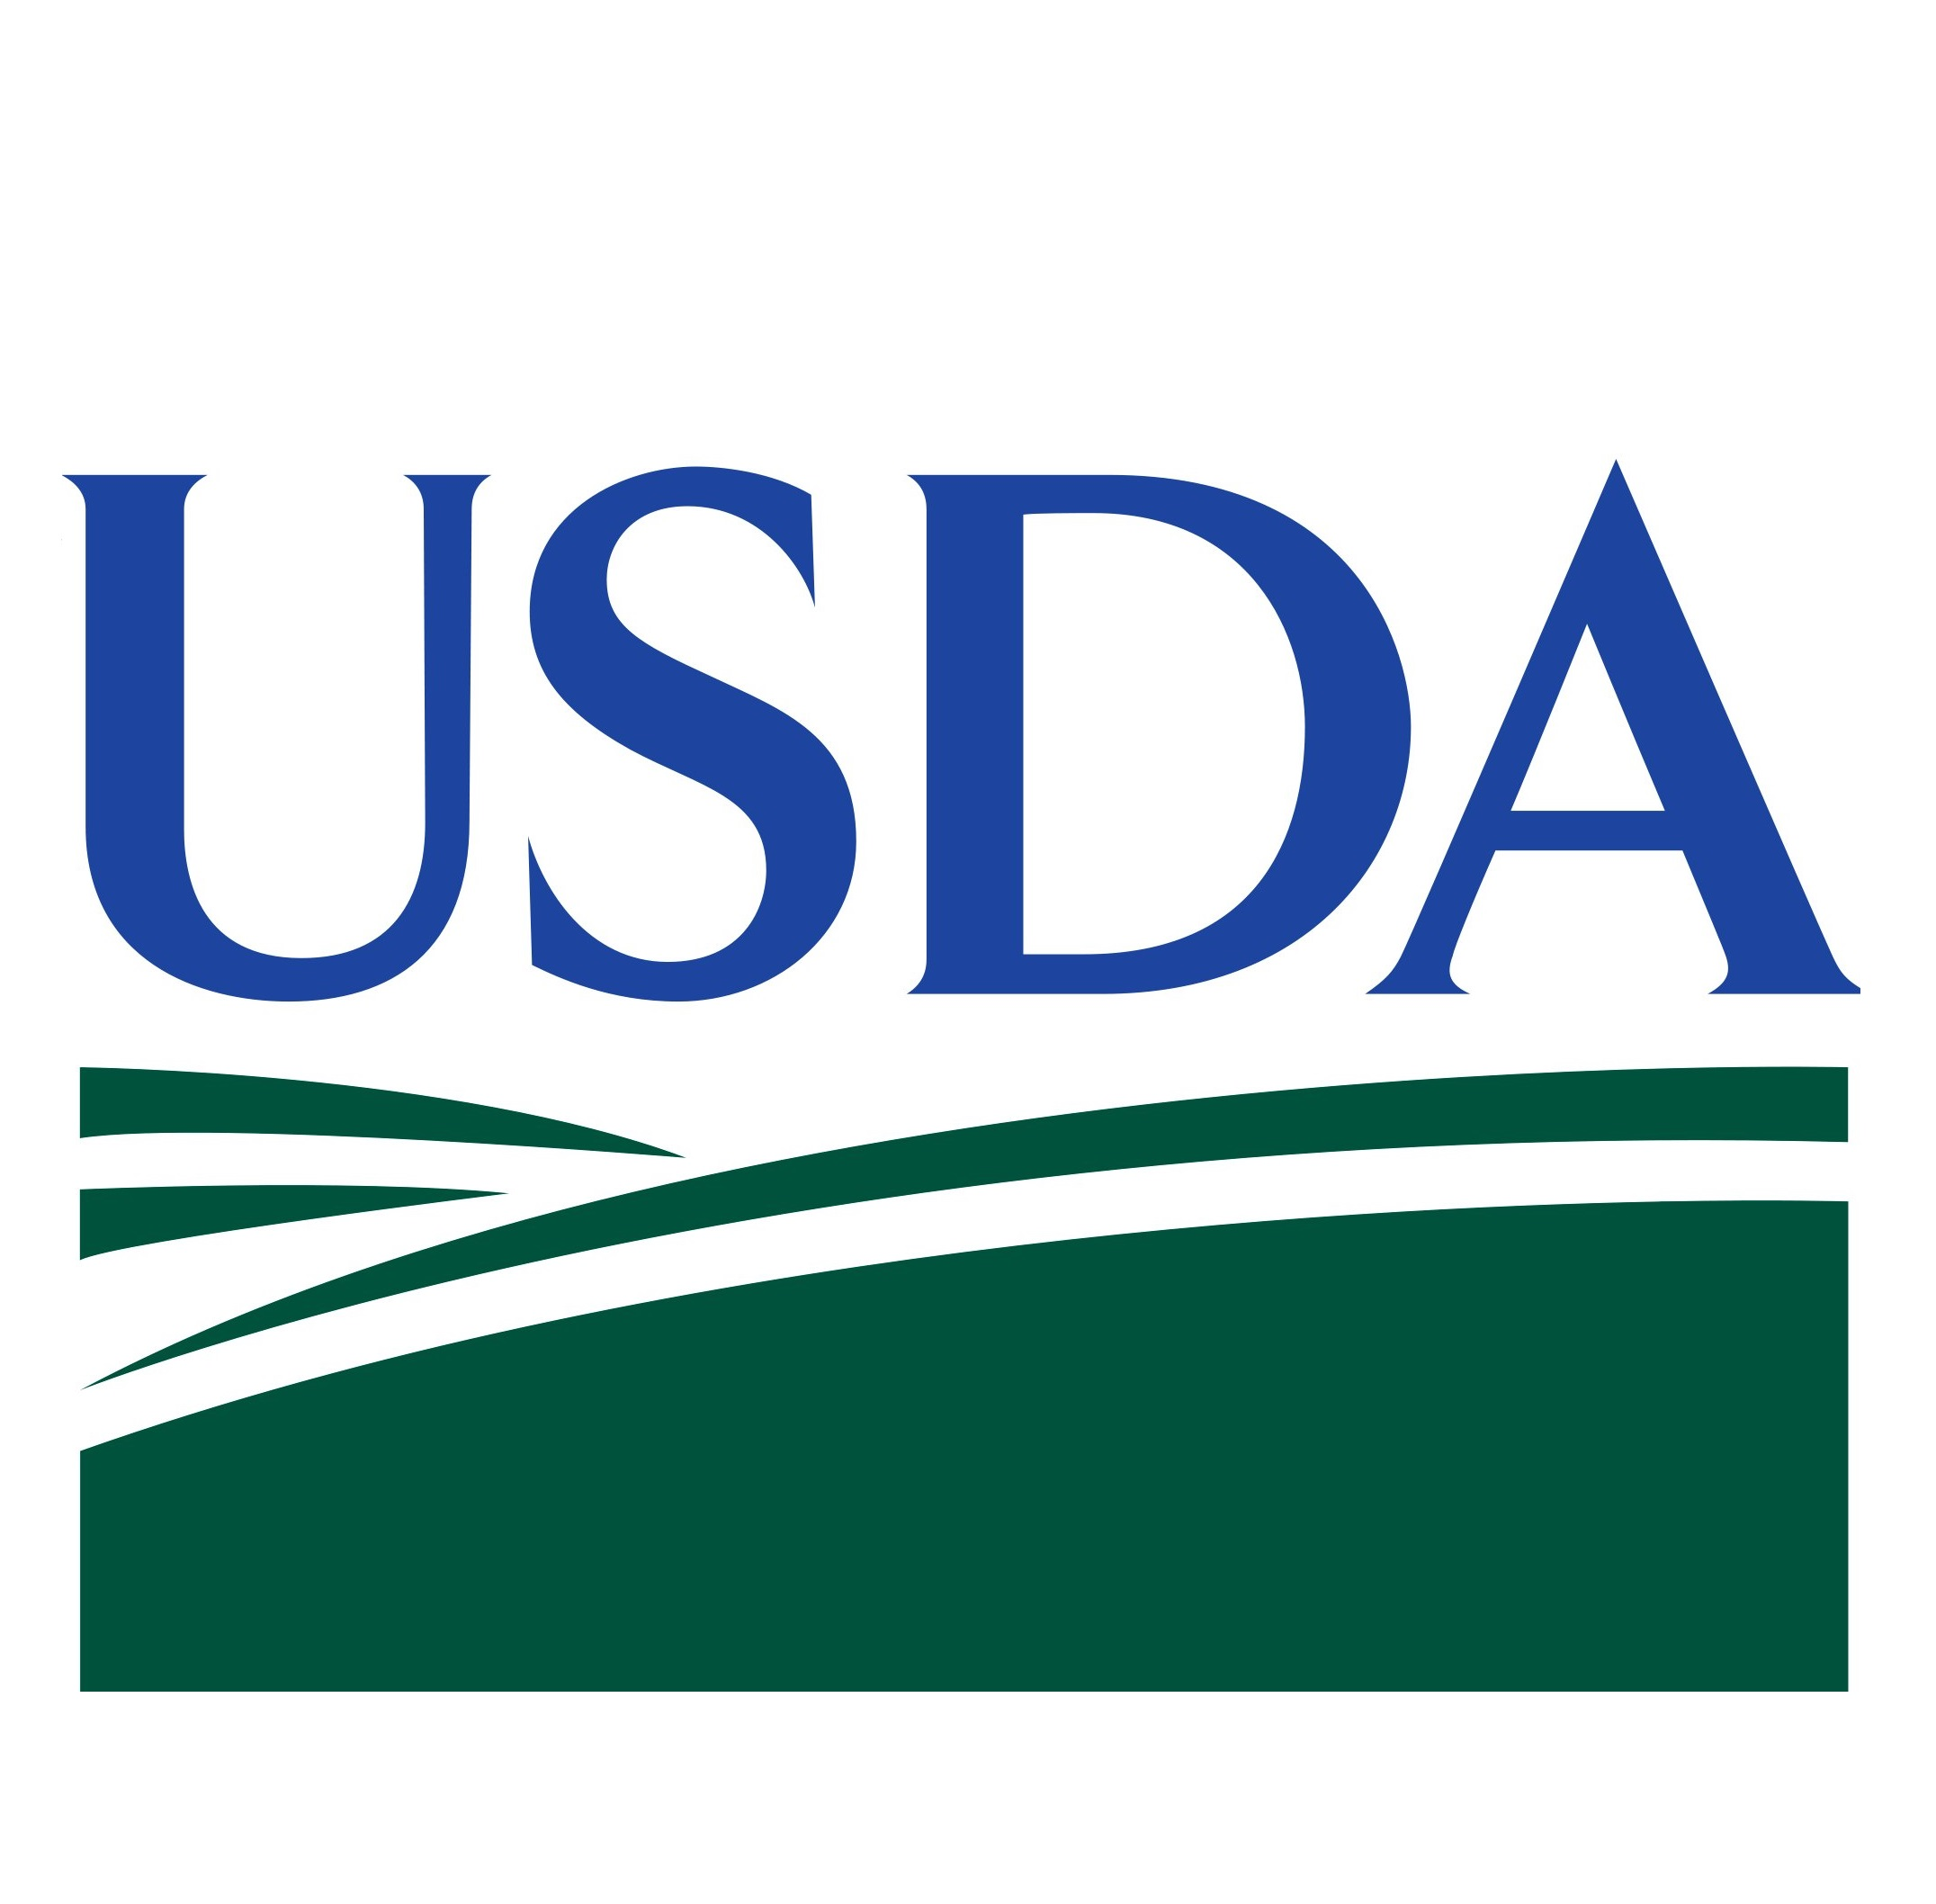 USDA/FAS – United States Department of Agriculture Foreign Agricultural Service